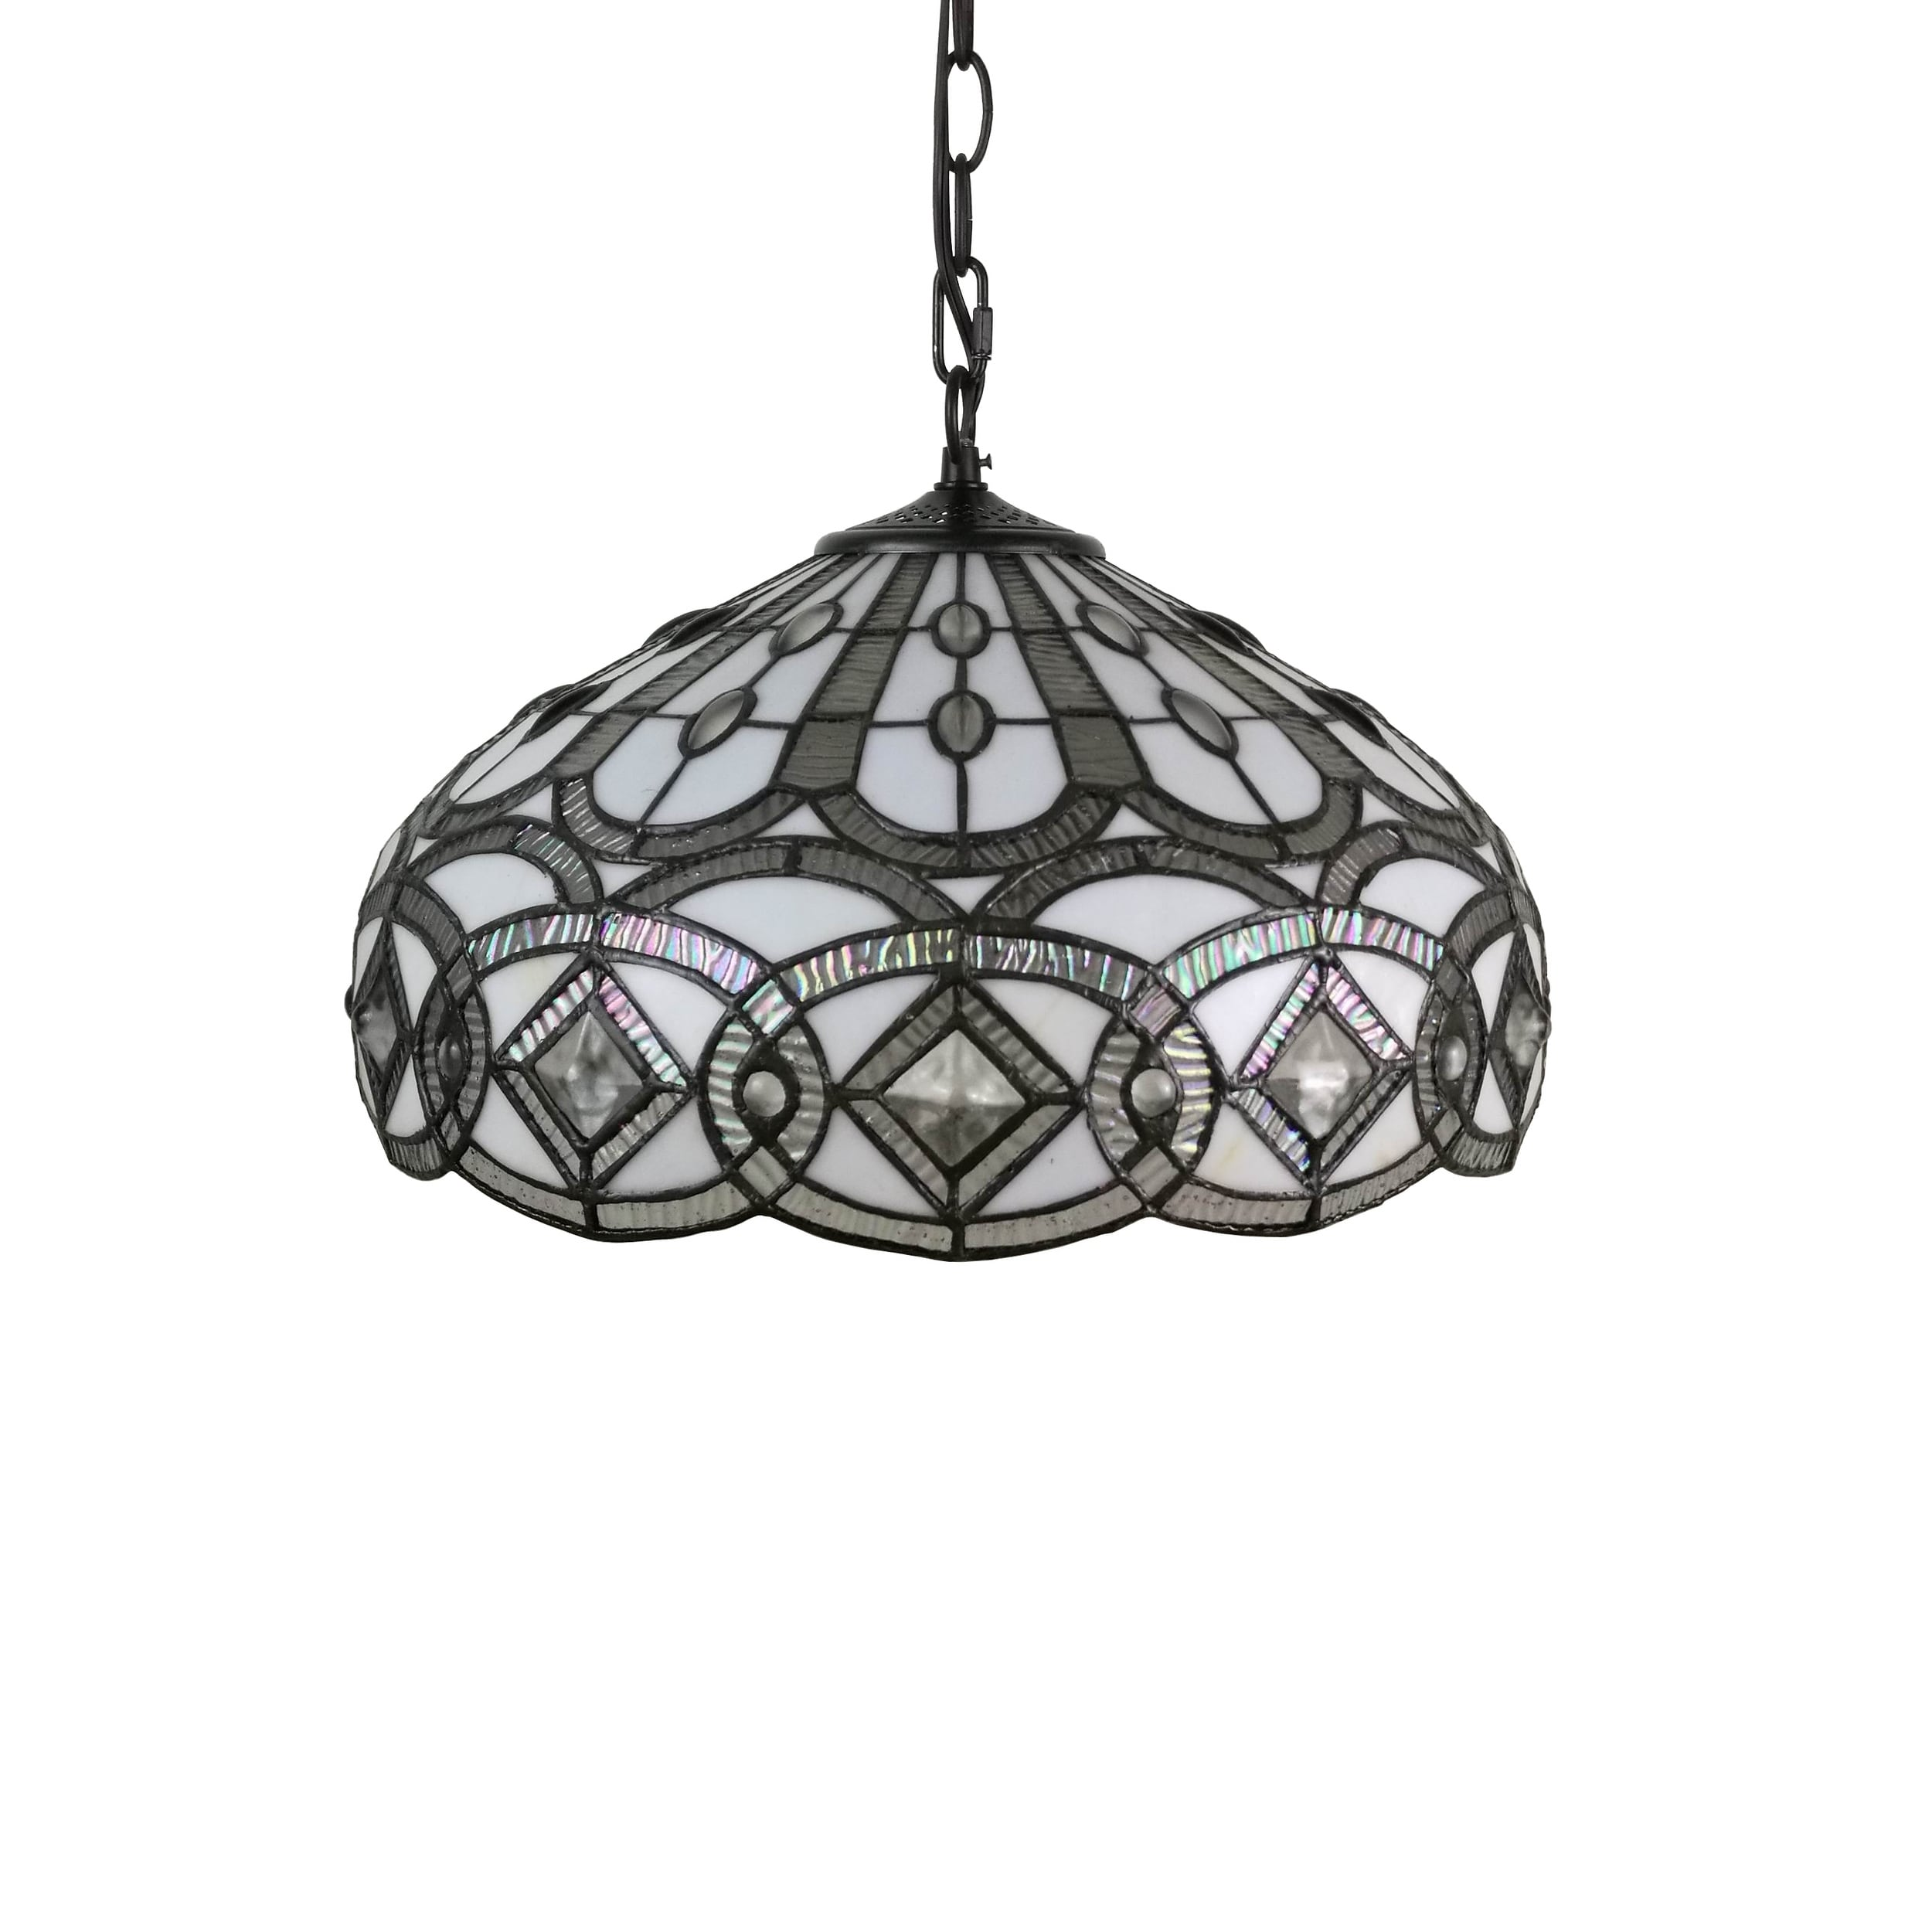 Shop Amora Lighting Am295hl16 Tiffany Style White Hanging Lamp 16 Inches Wide On Sale Free Shipping Today 17624667